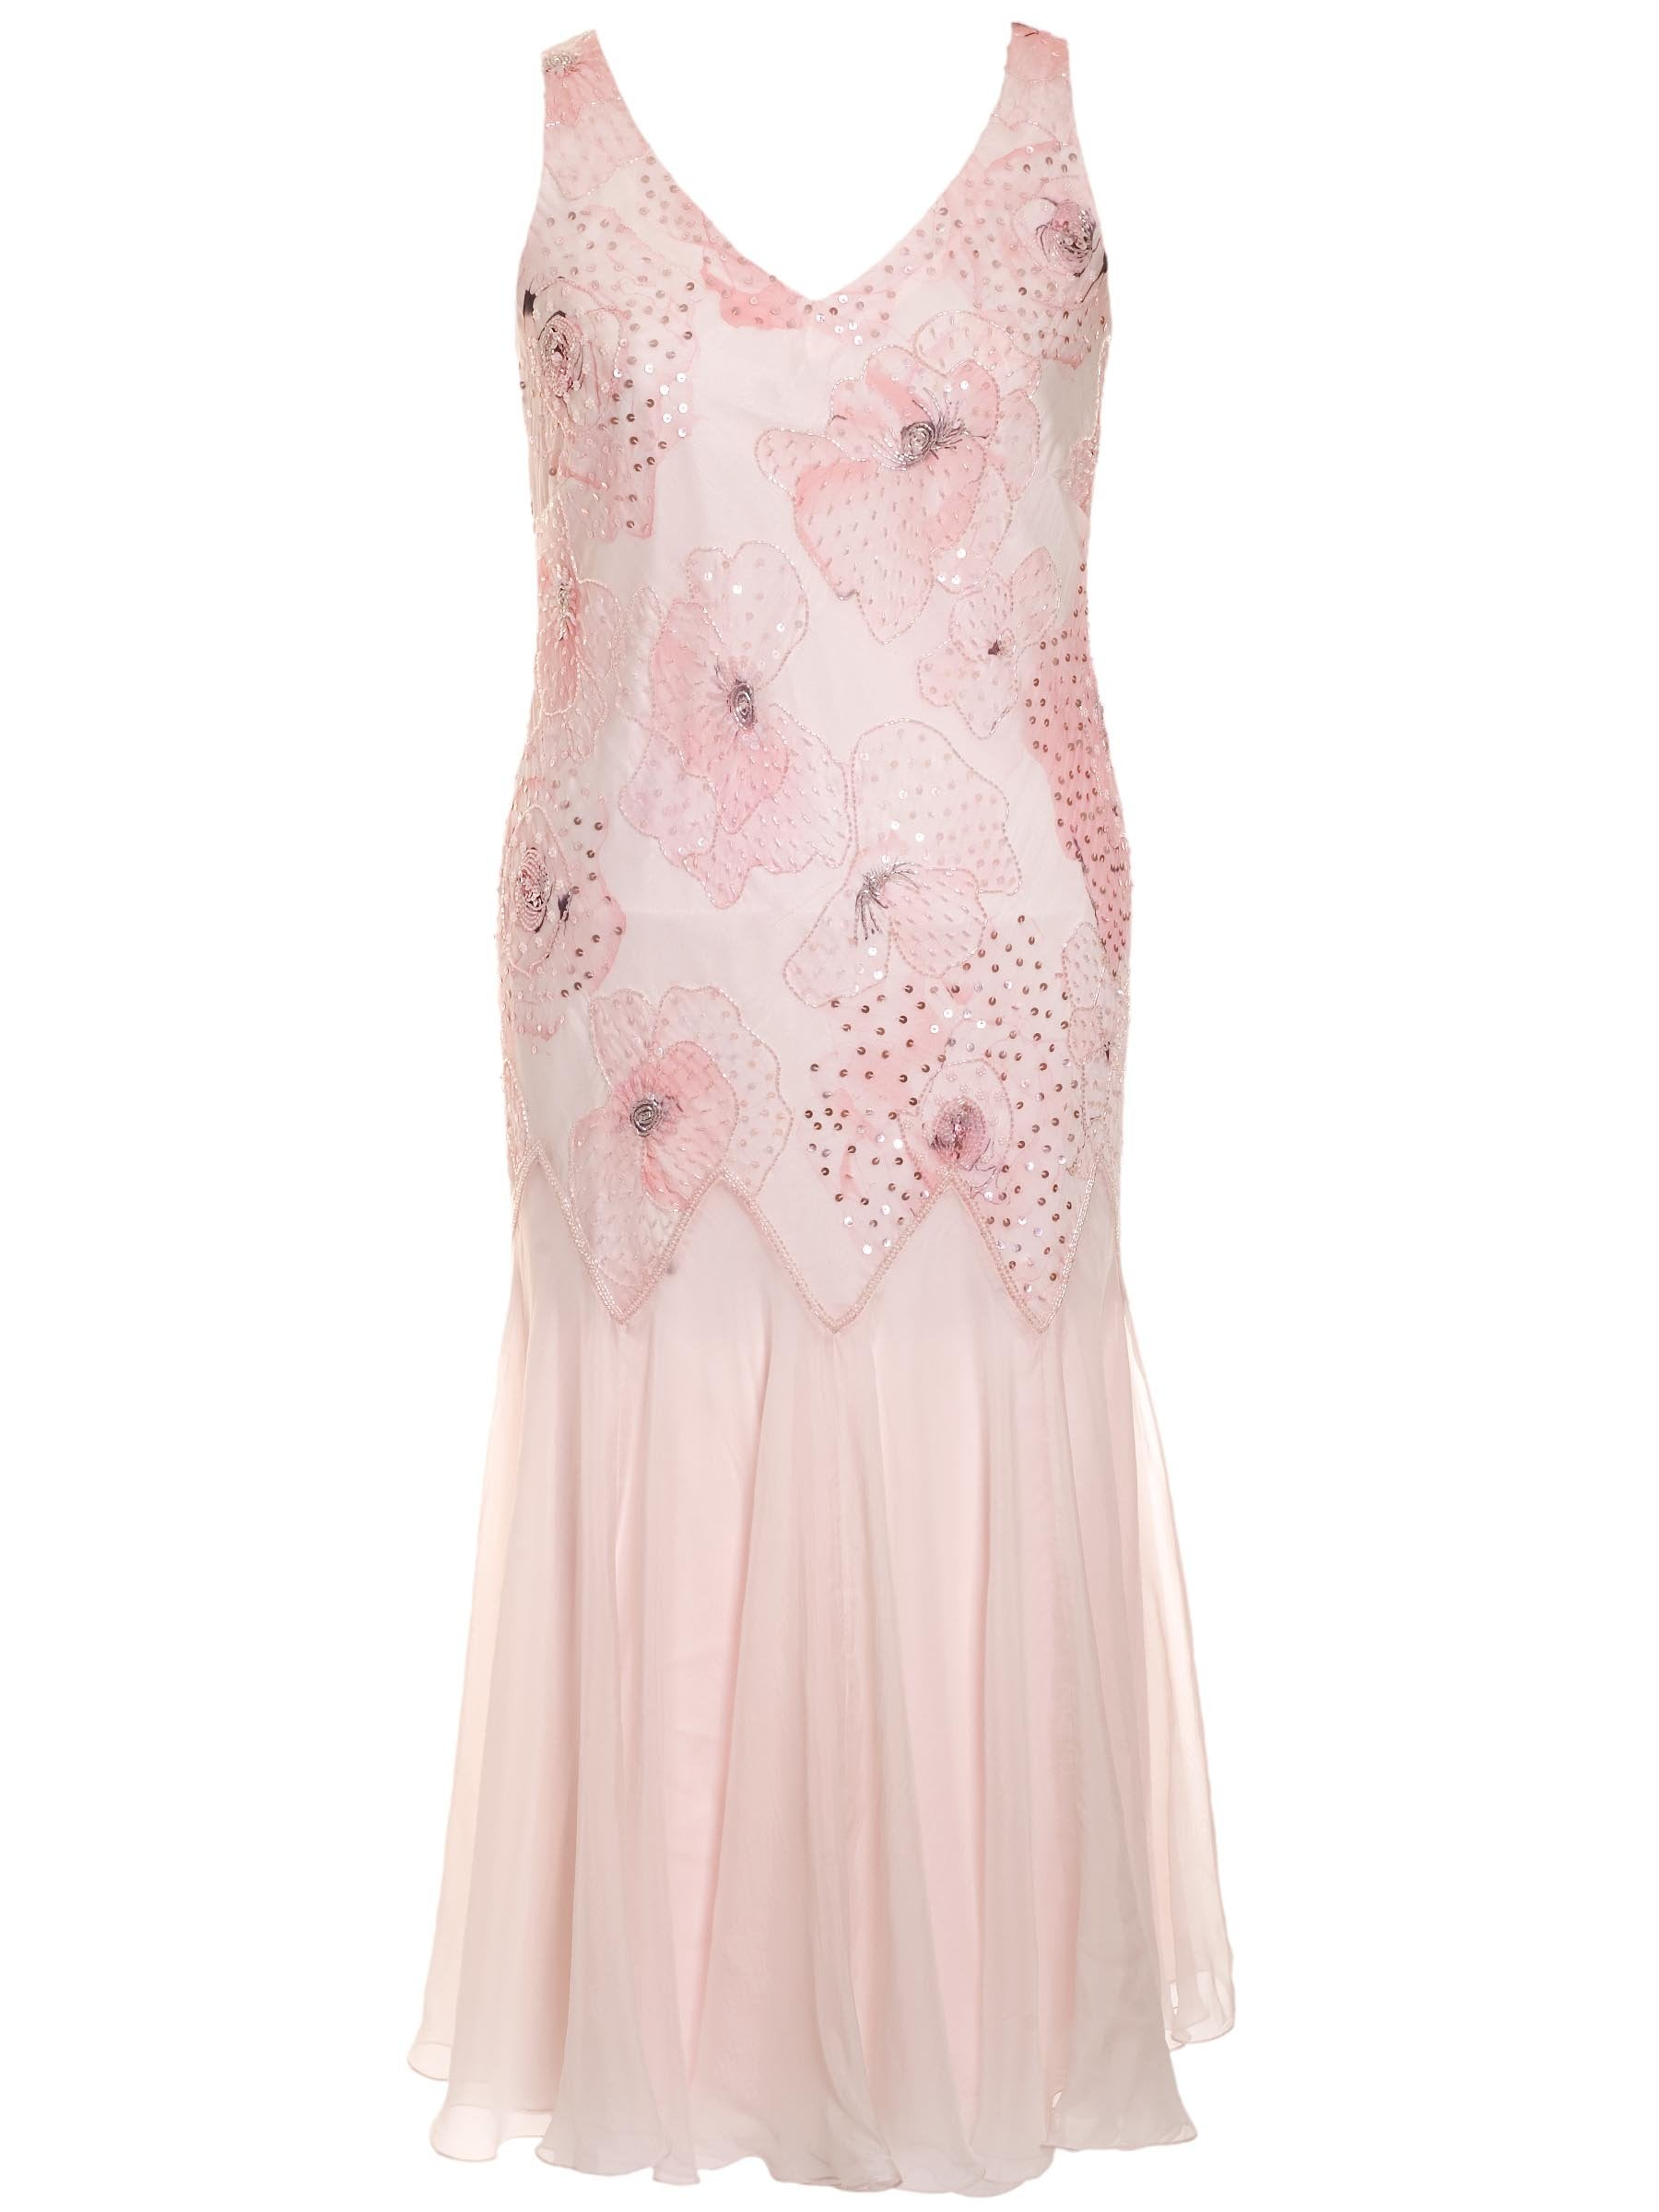 NOW £135 Petal Printed Silk Beaded Dress